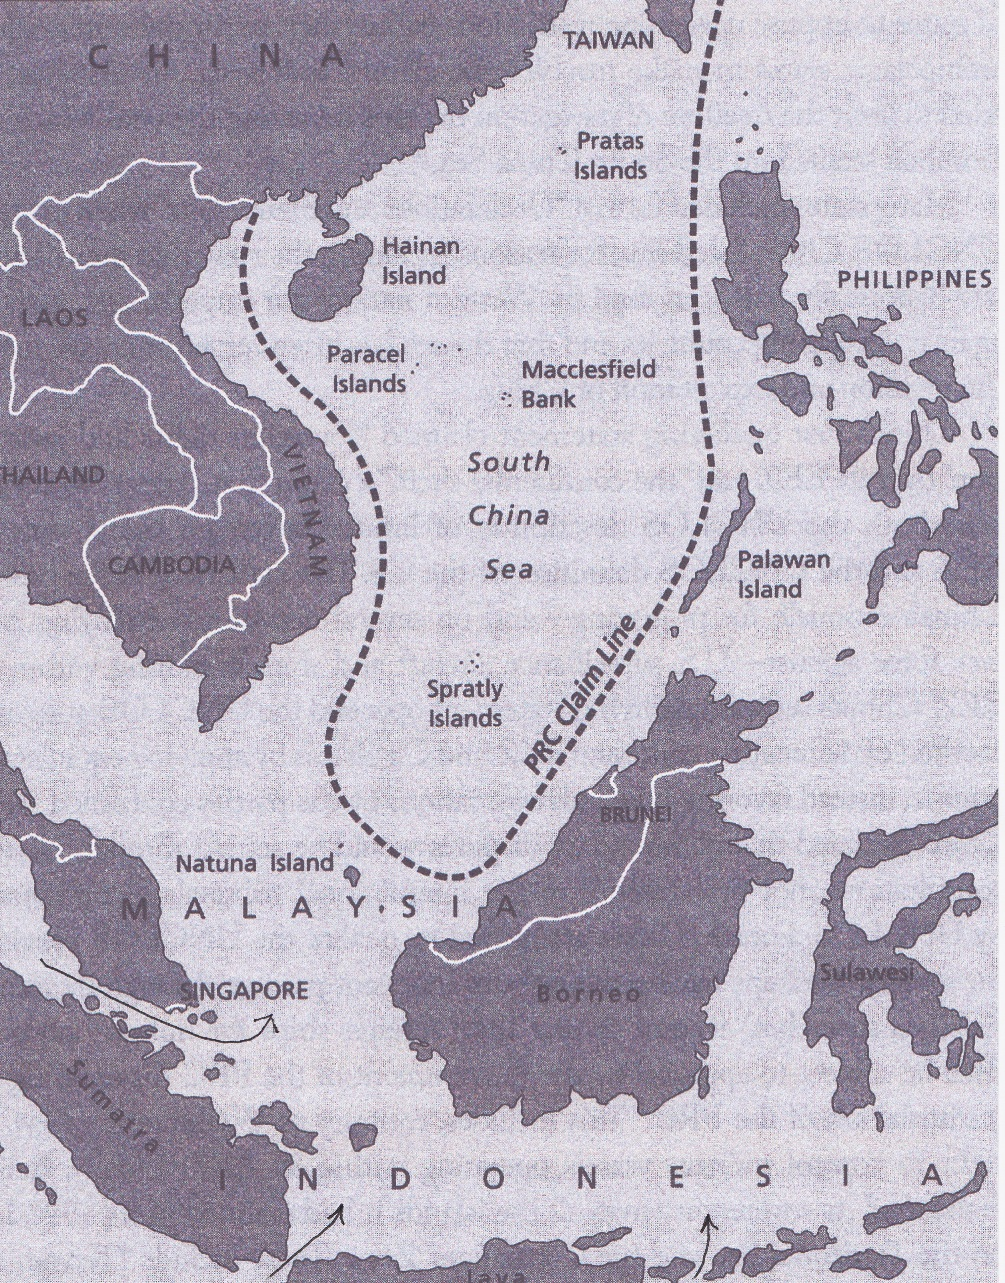 South China Sea and Key Straits